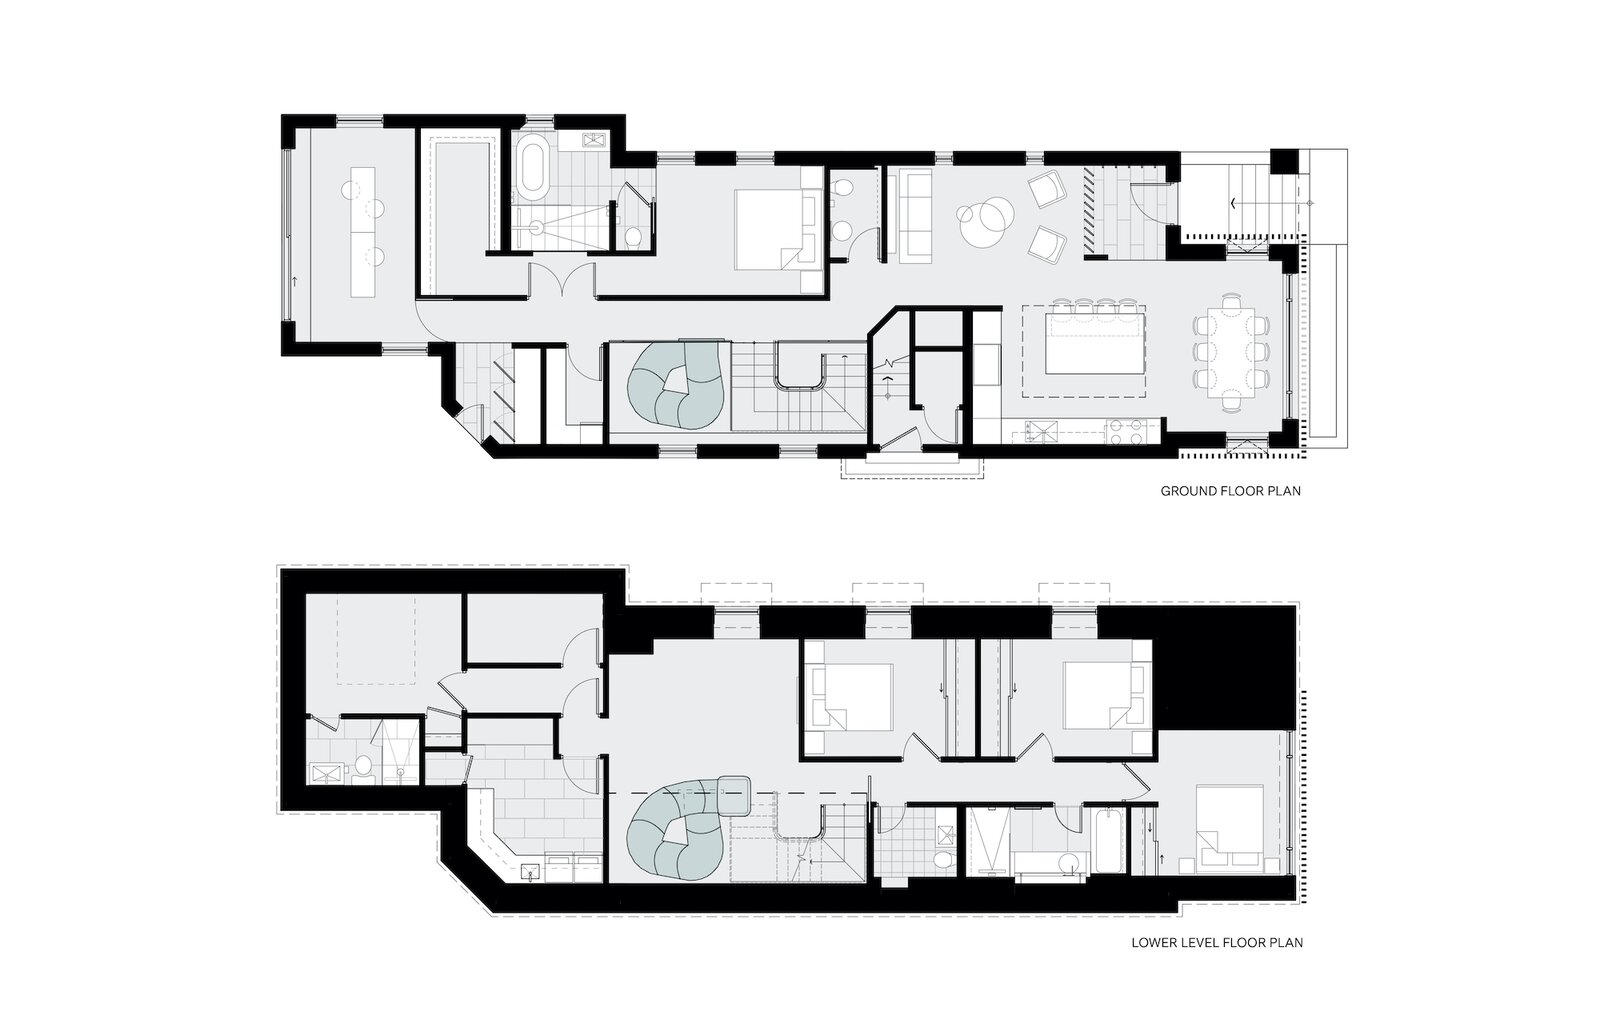 Ground floor and lower level floor plans of Walker Residence by Reflect Architecture